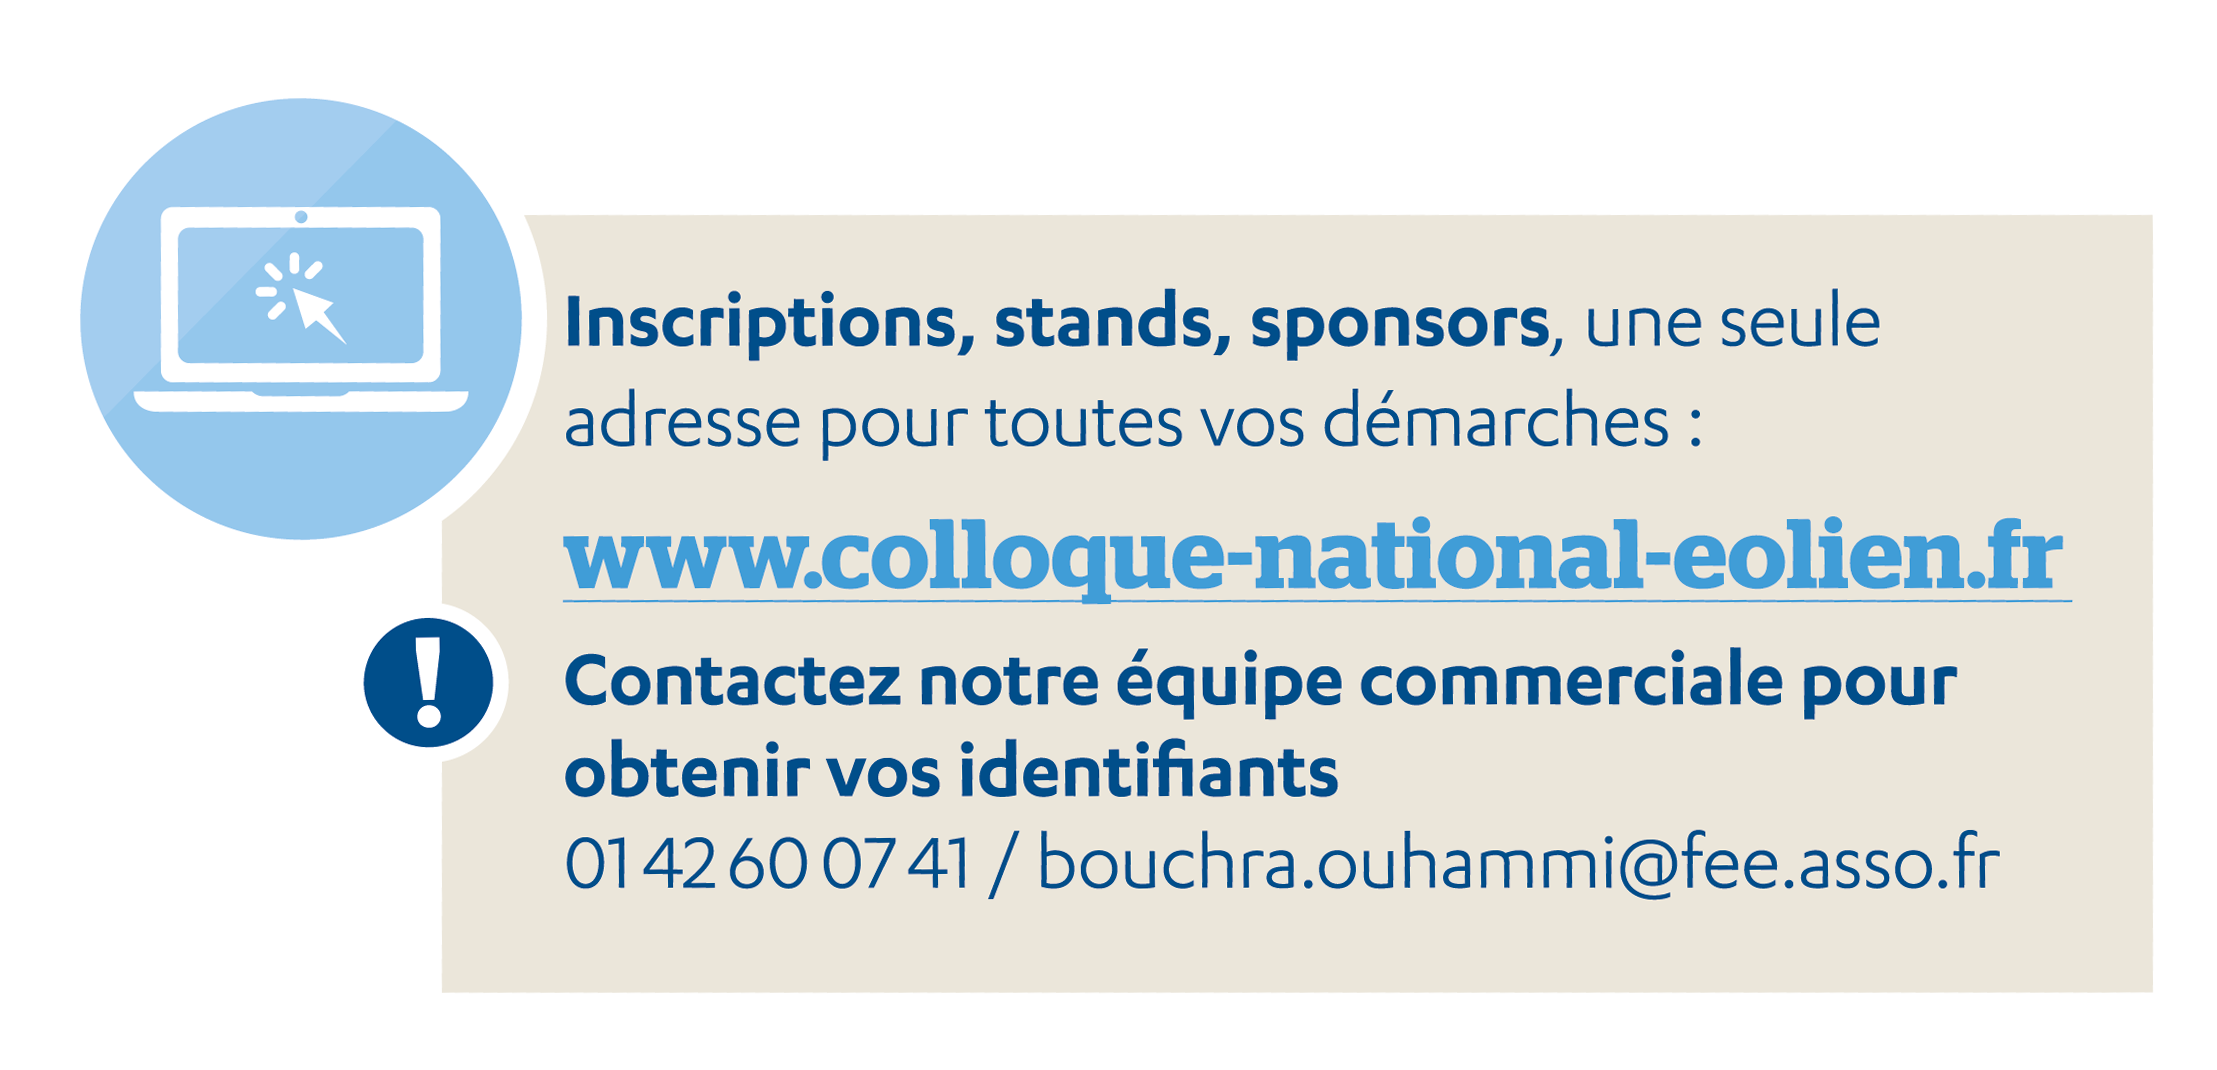 Inscription_CNE_2017